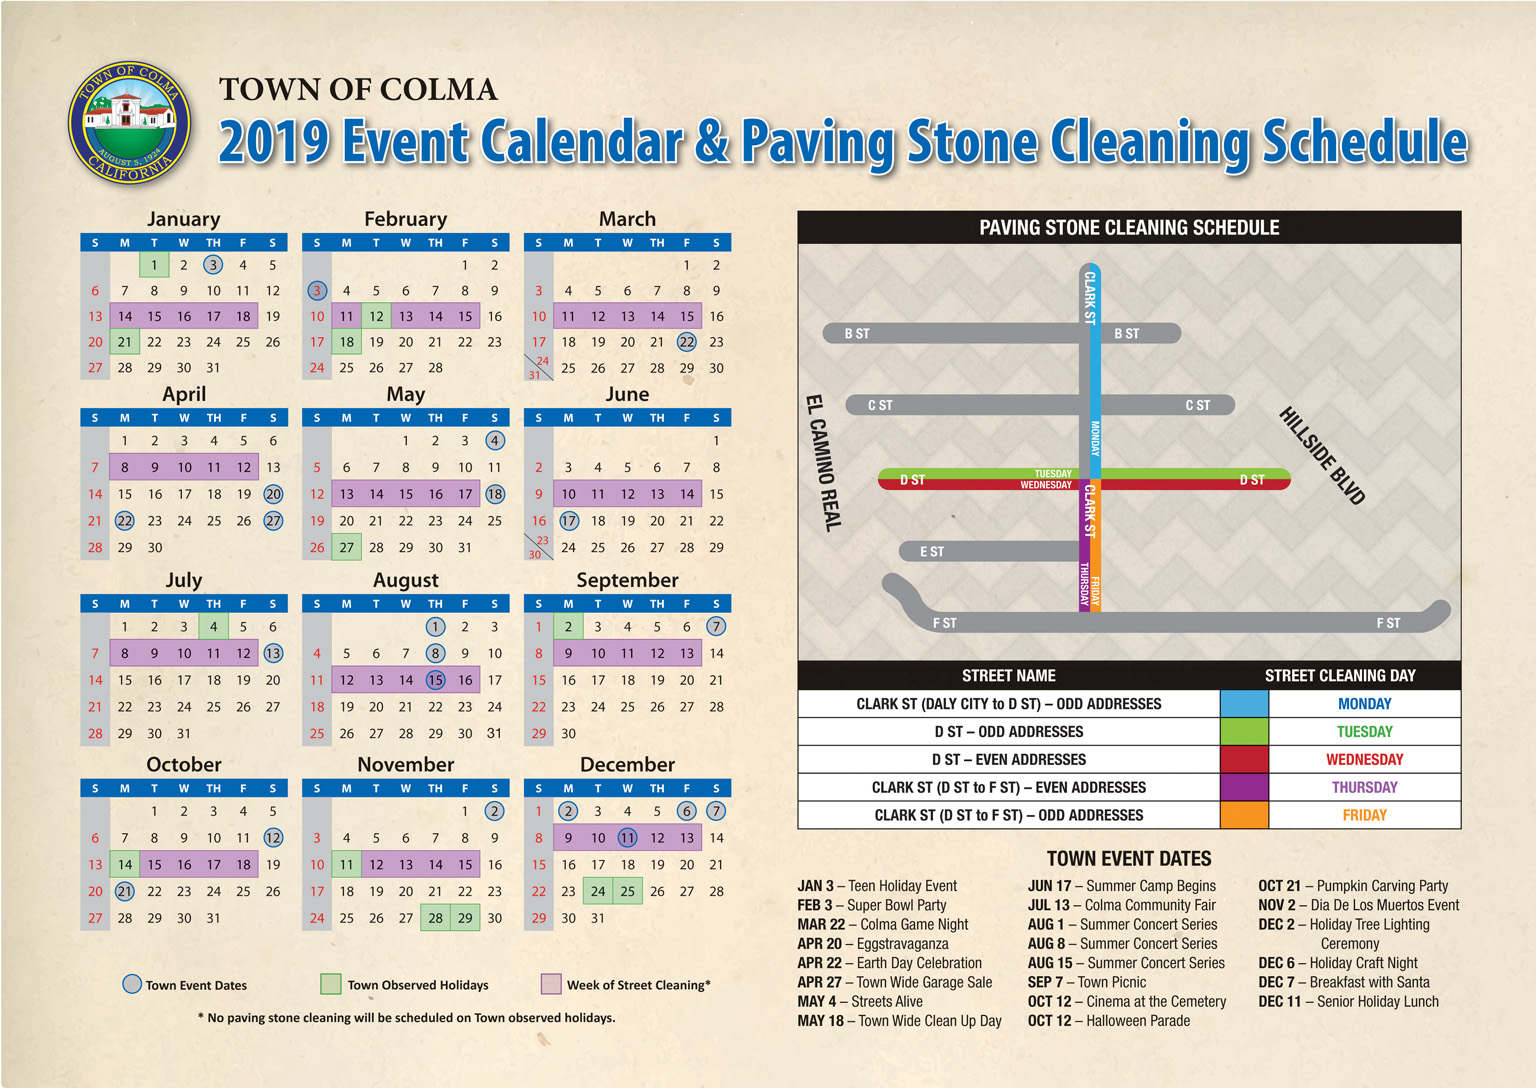 Paving stone cleaning calendar D St and rest of Clark St